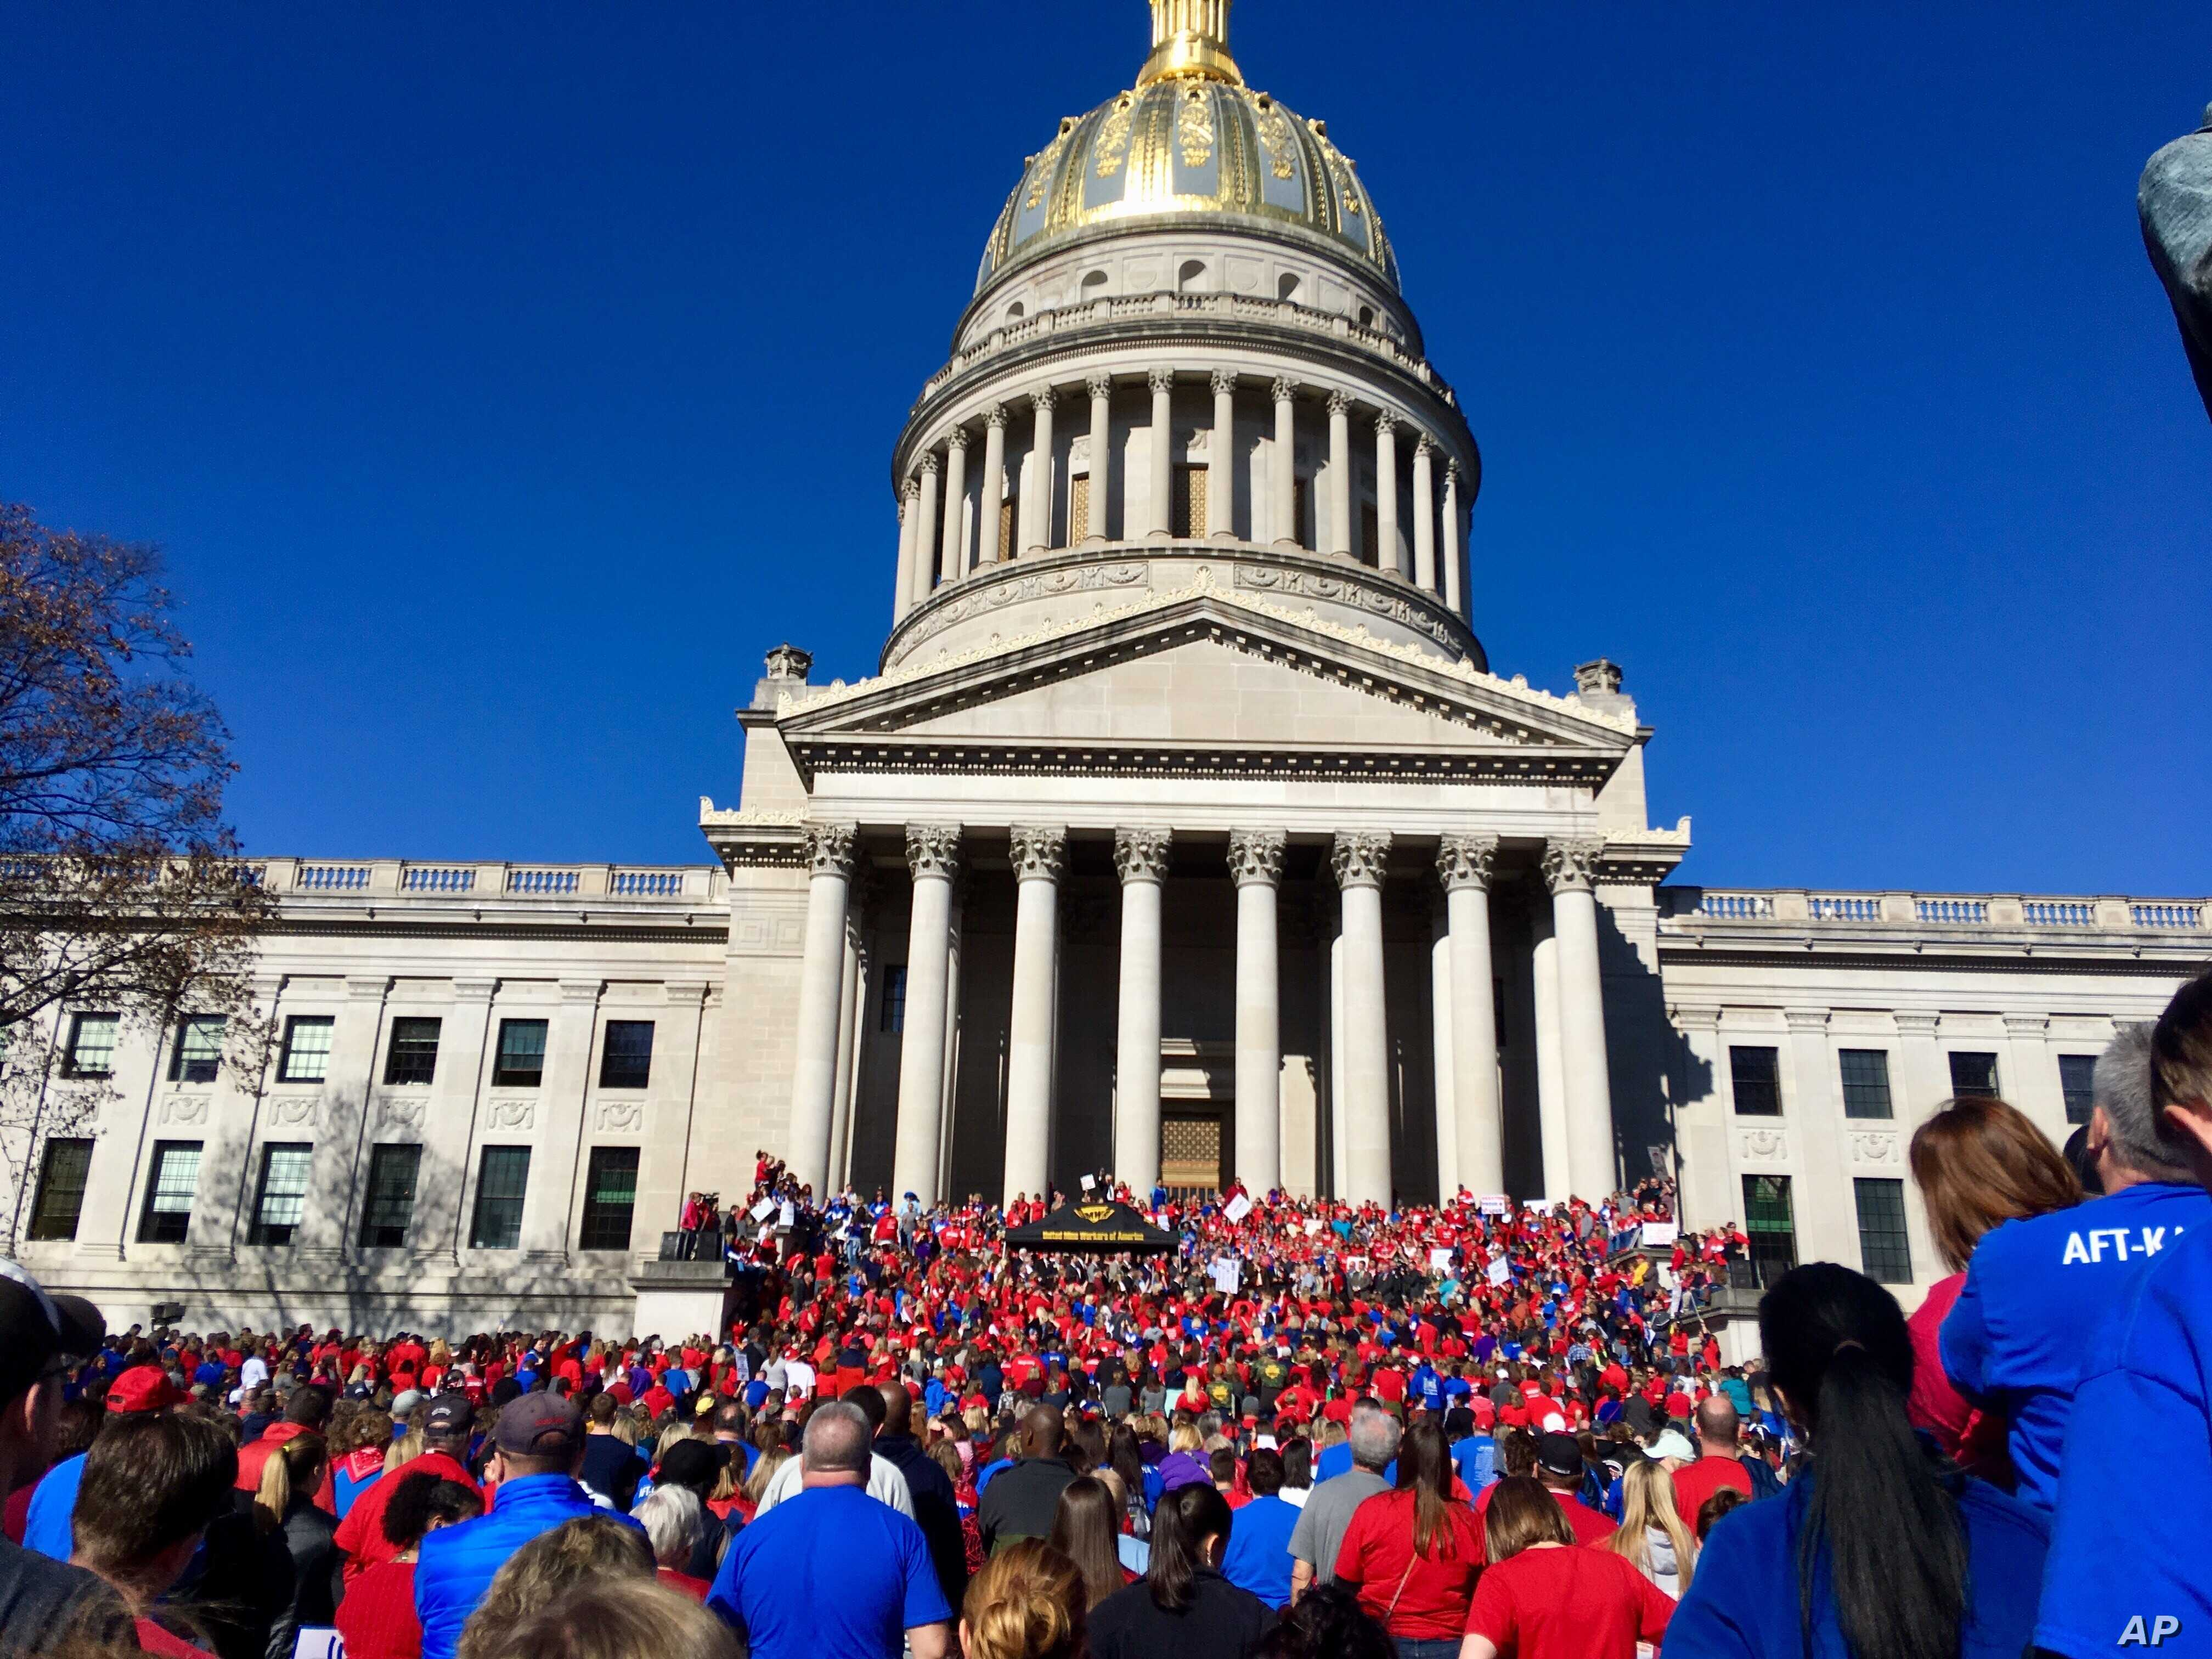 Thousands of West Virginia teachers attend a rally at the state Capitol in Charleston, W.Va., Feb. 26, 2018.